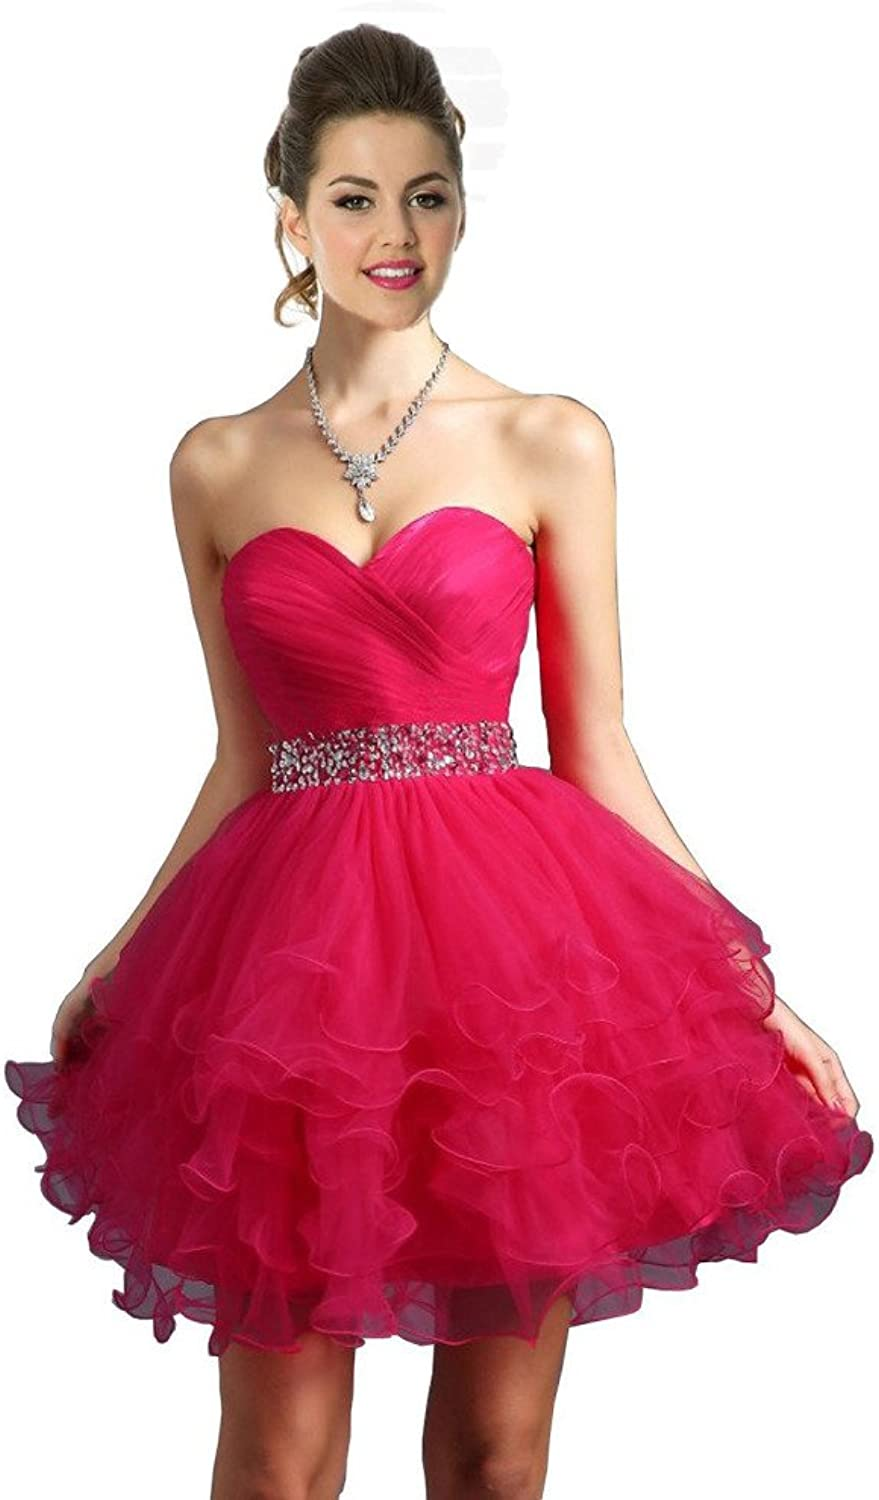 JoyVany Sweetheart Beaded Pageant Dresseses 2016 Short Ruffled Homecoming Dress